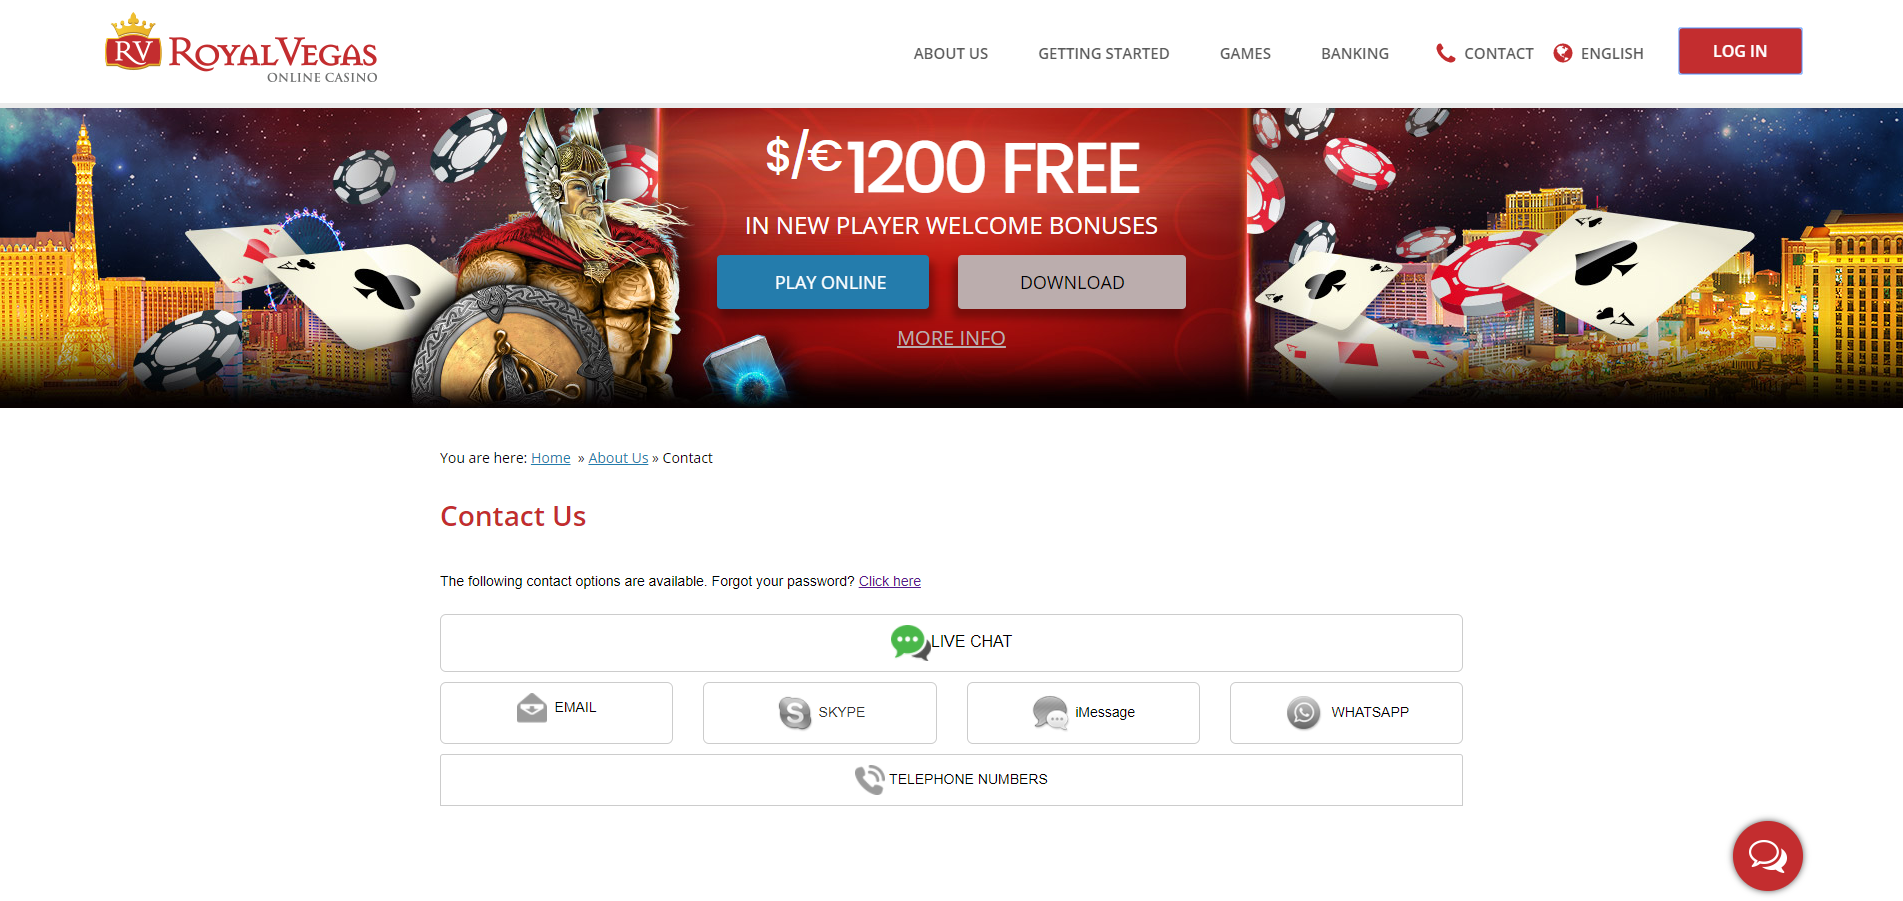 NoBonus Casino Online Review With Promotions & Bonuses